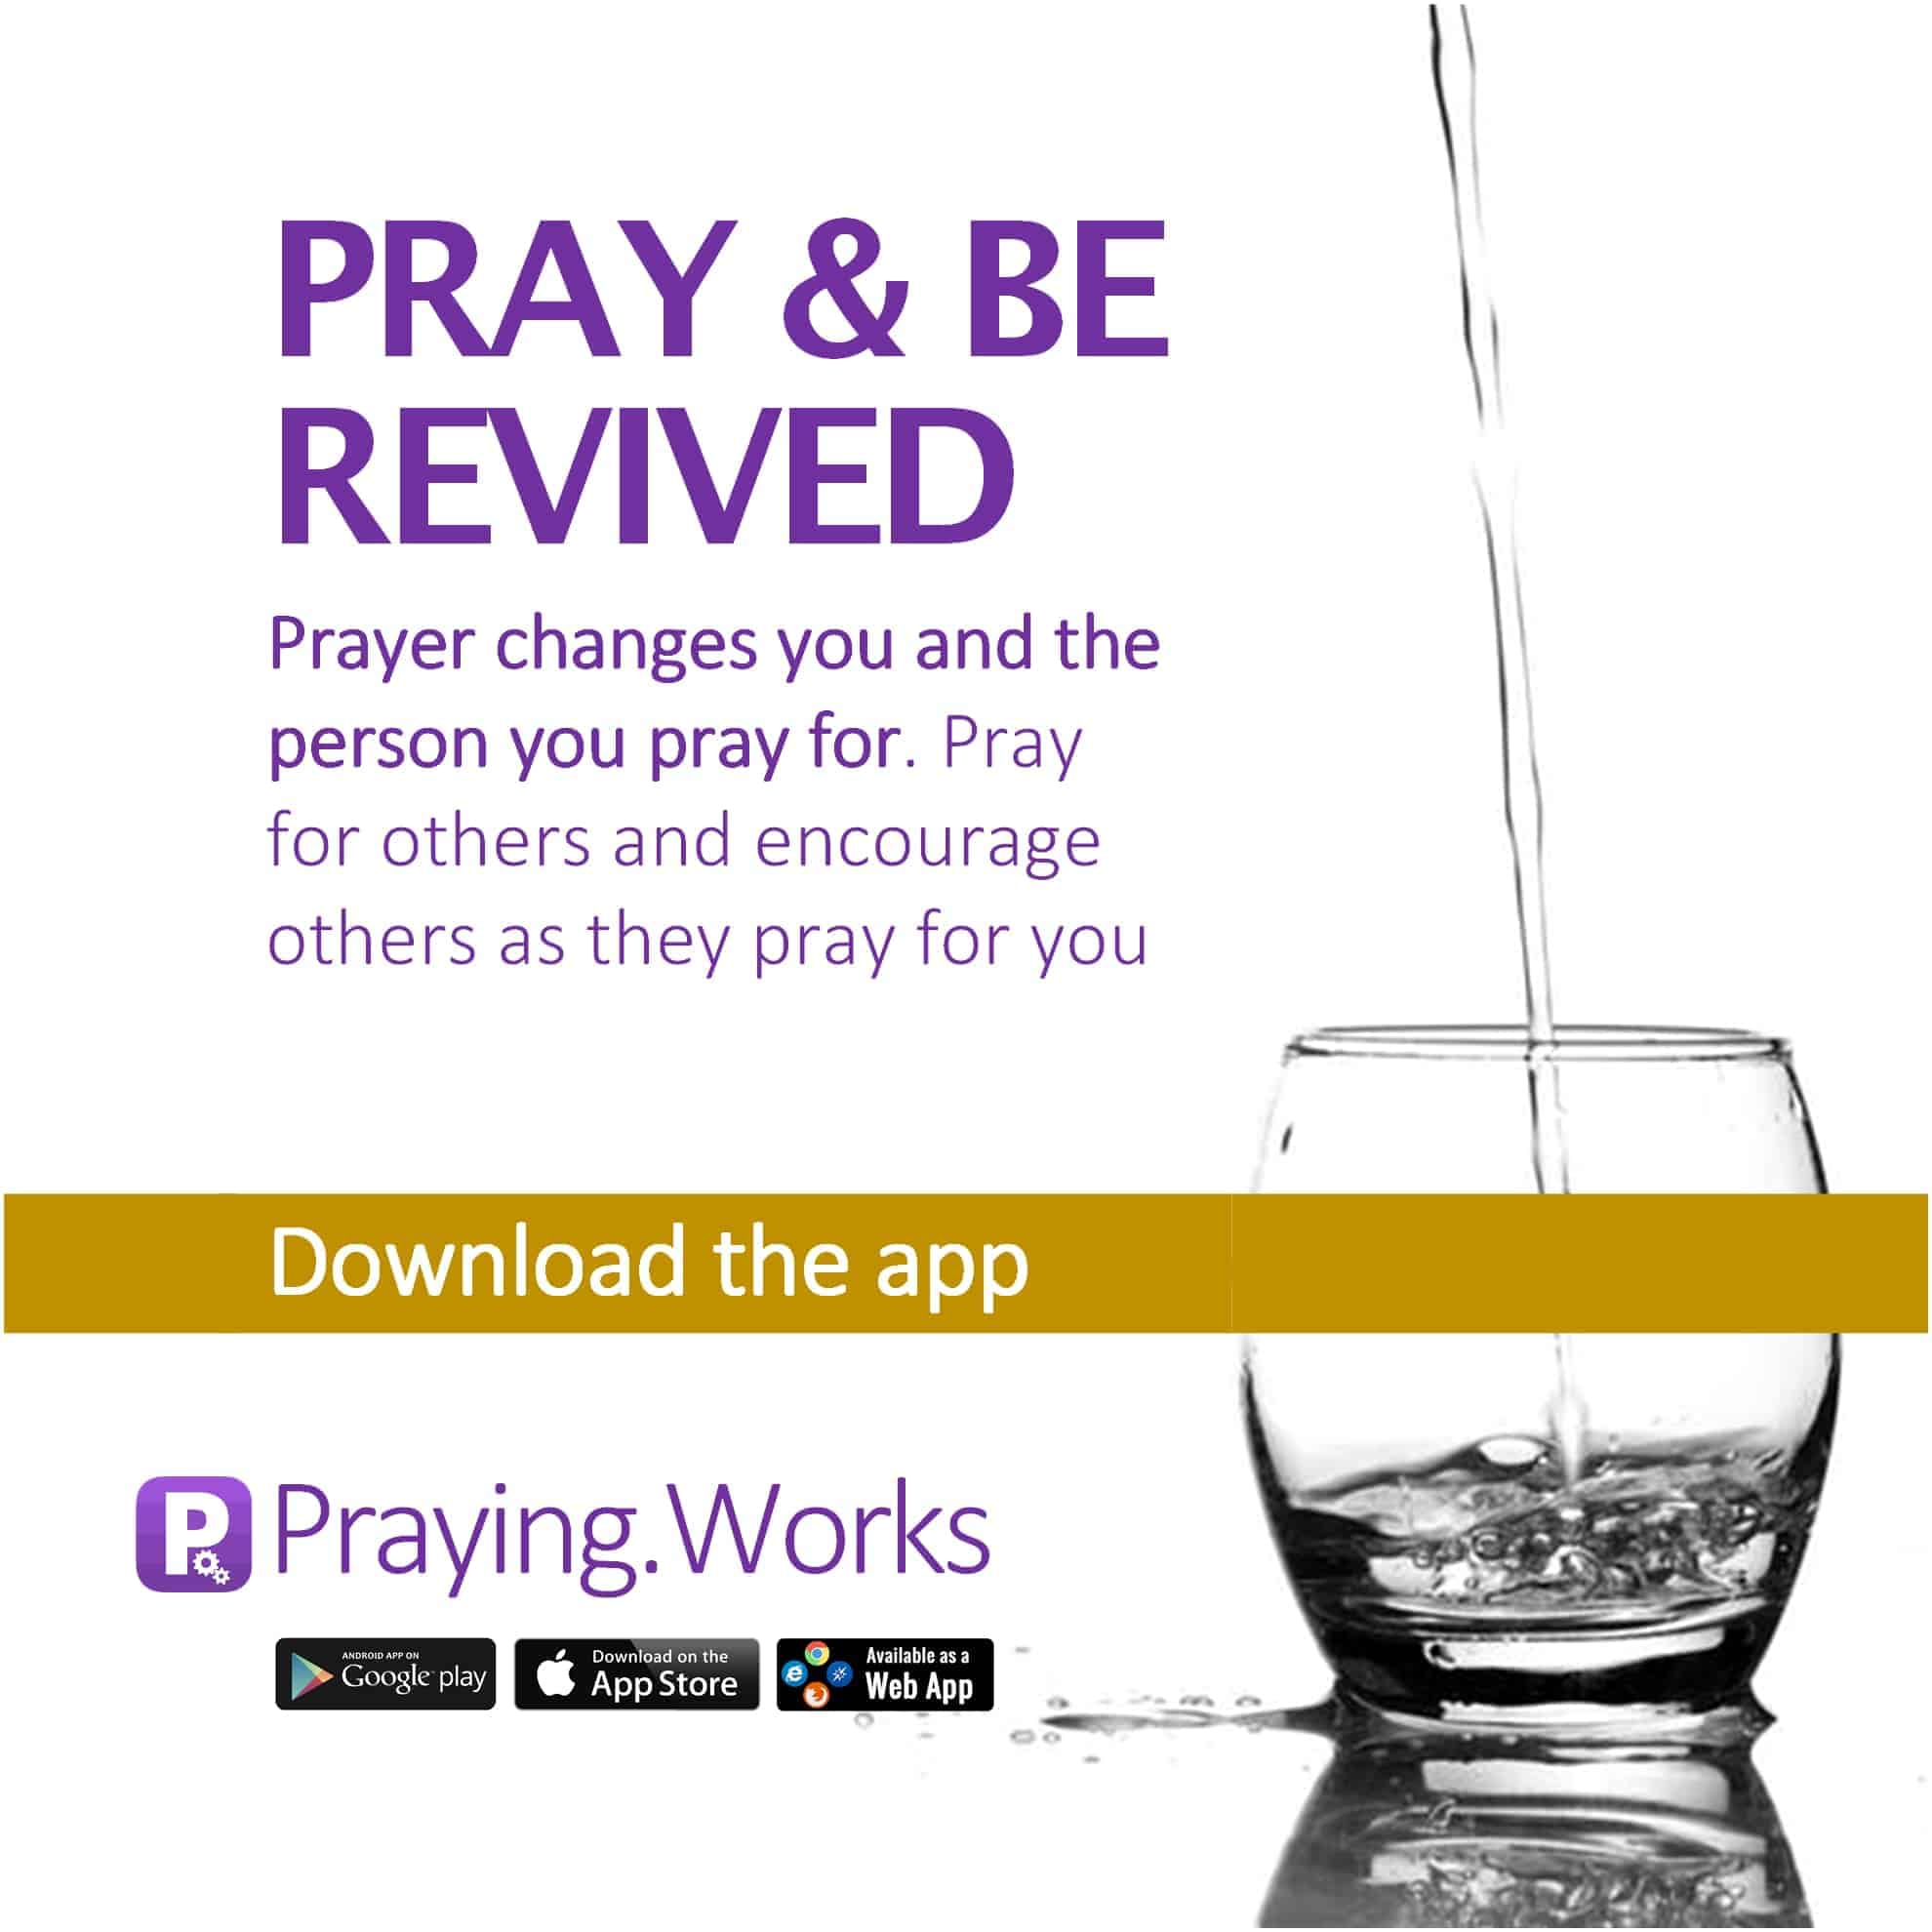 Pray and Be Revived